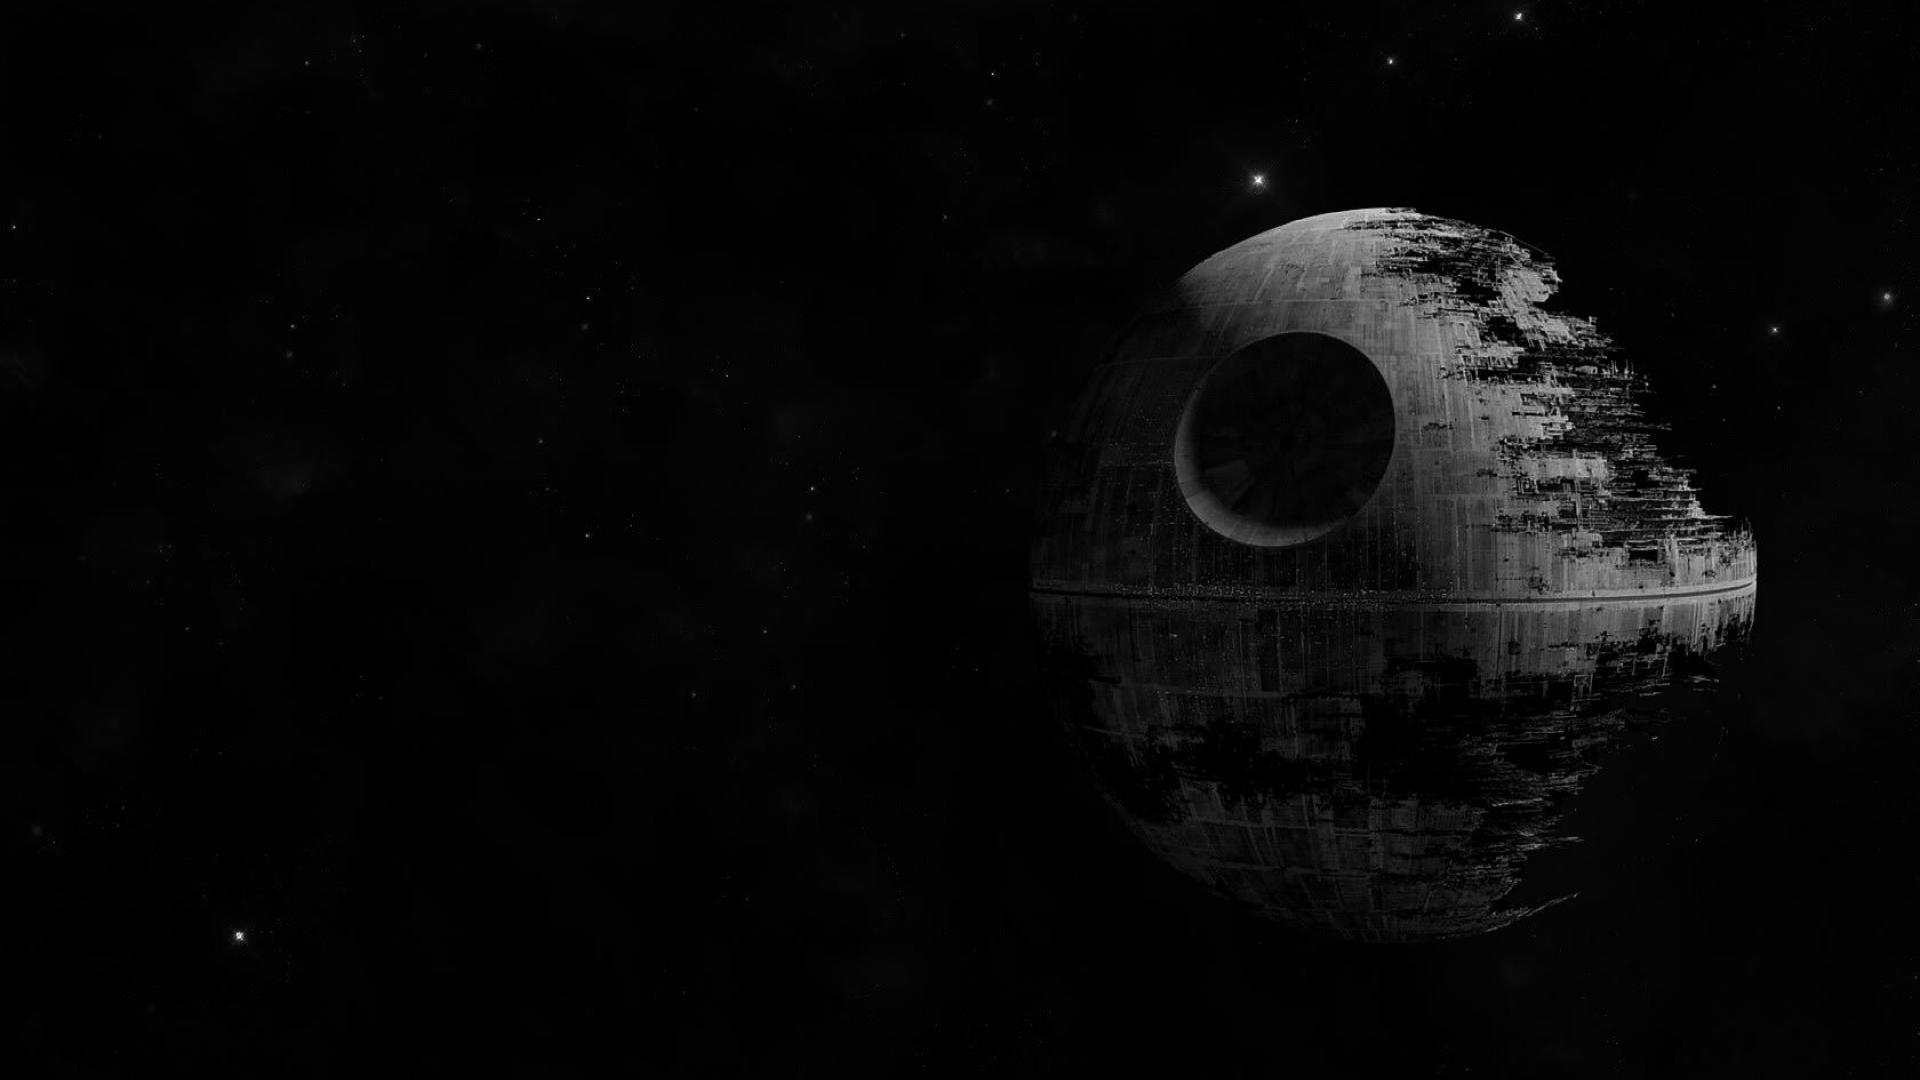 Star Wars Wallpaper hd